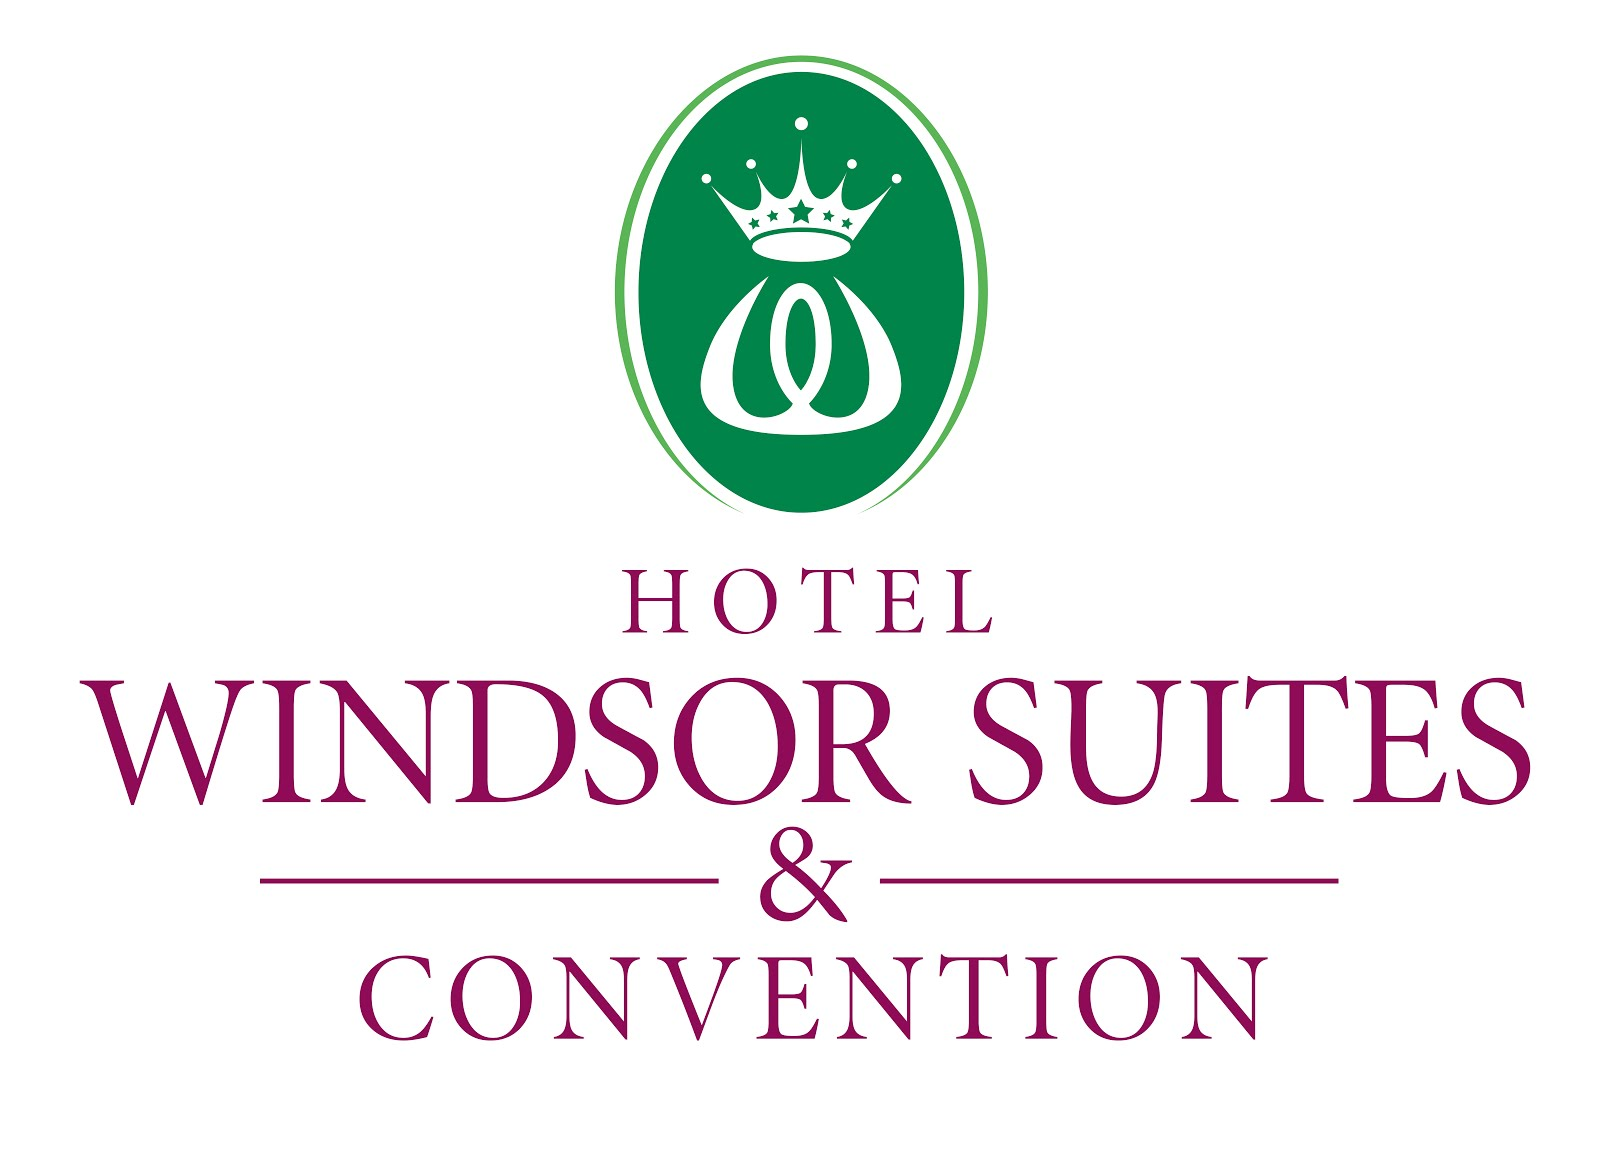 Our Hotel Sponsor